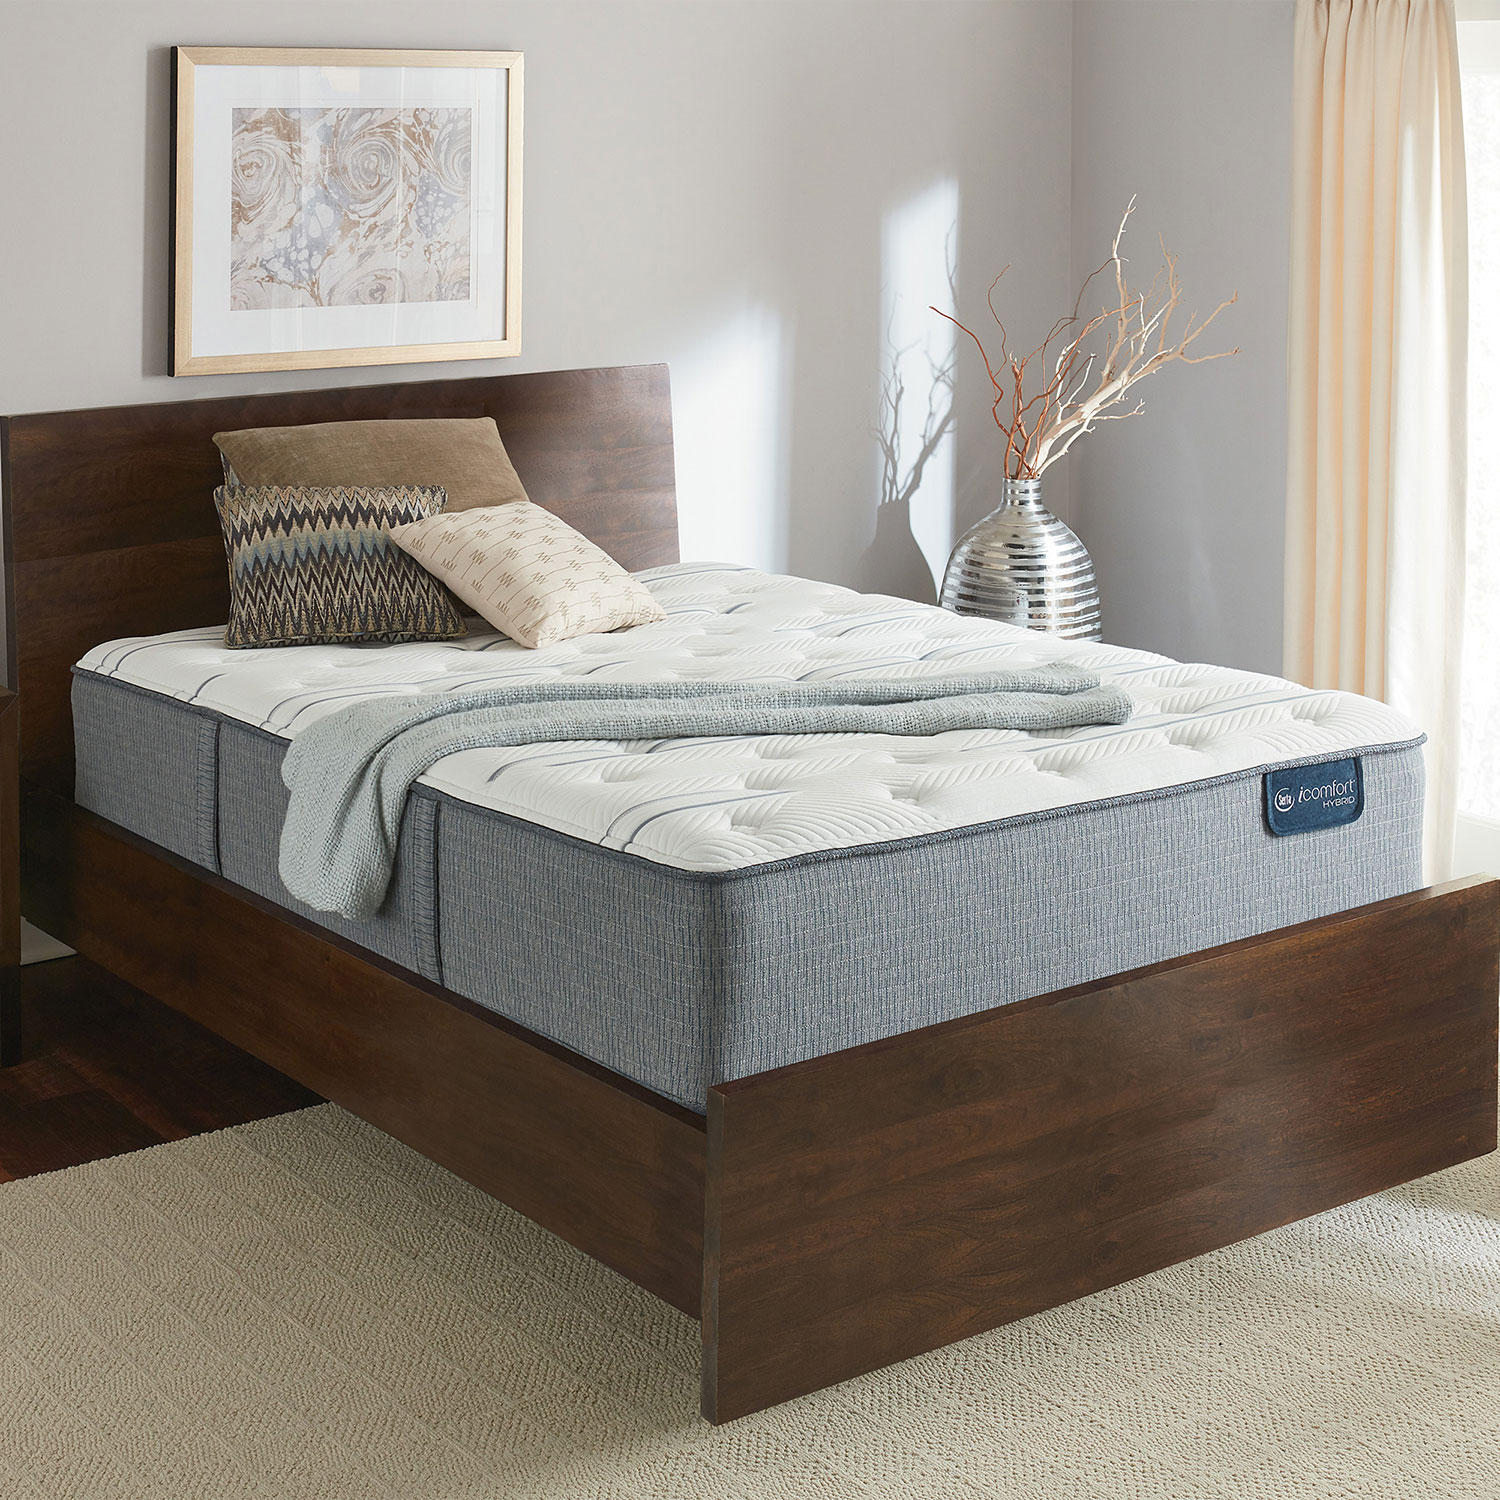 $600 Off Select Mattresses